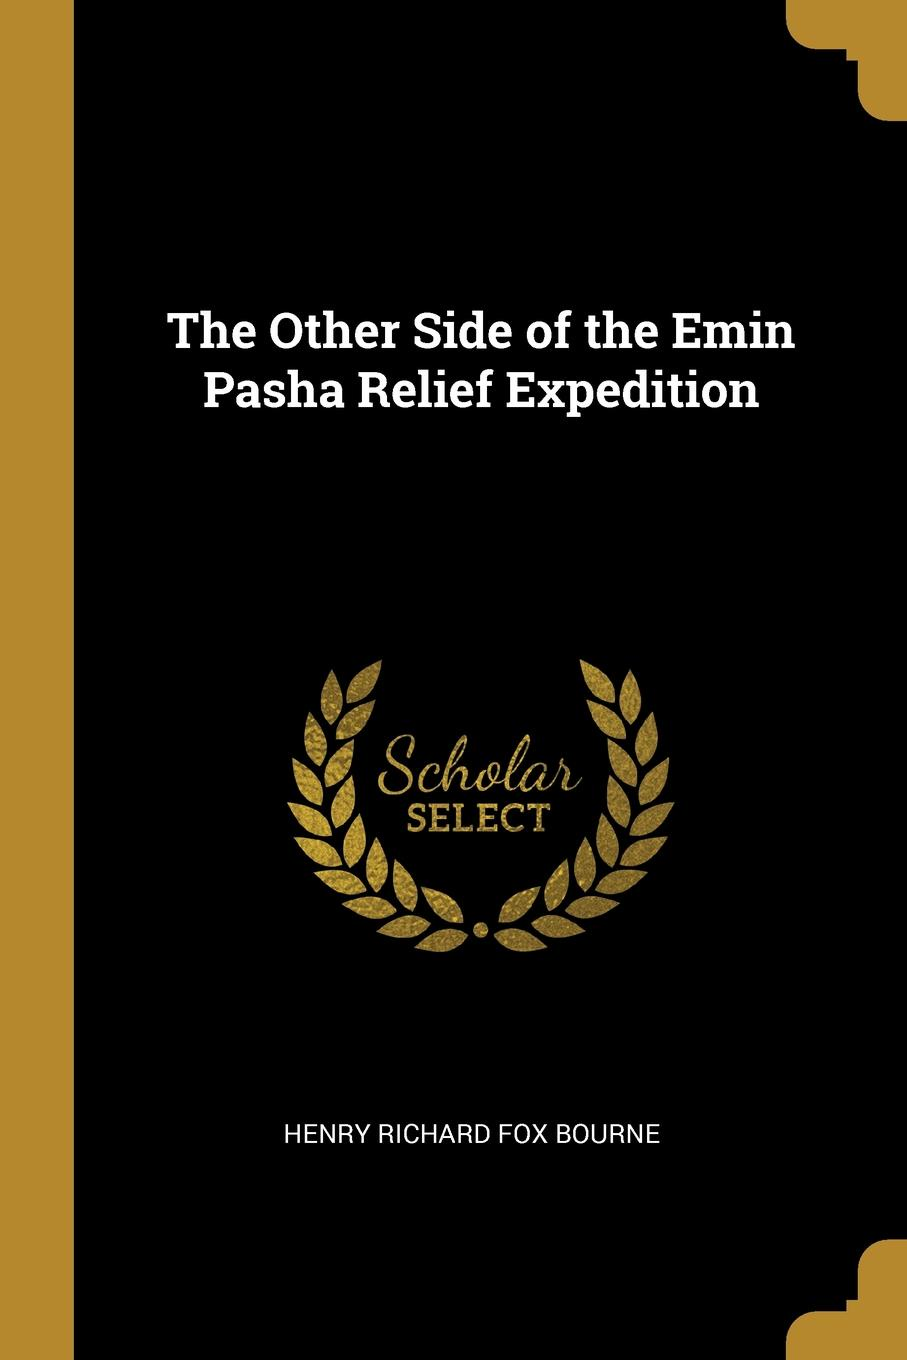 Henry Richard Fox Bourne. The Other Side of the Emin Pasha Relief Expedition